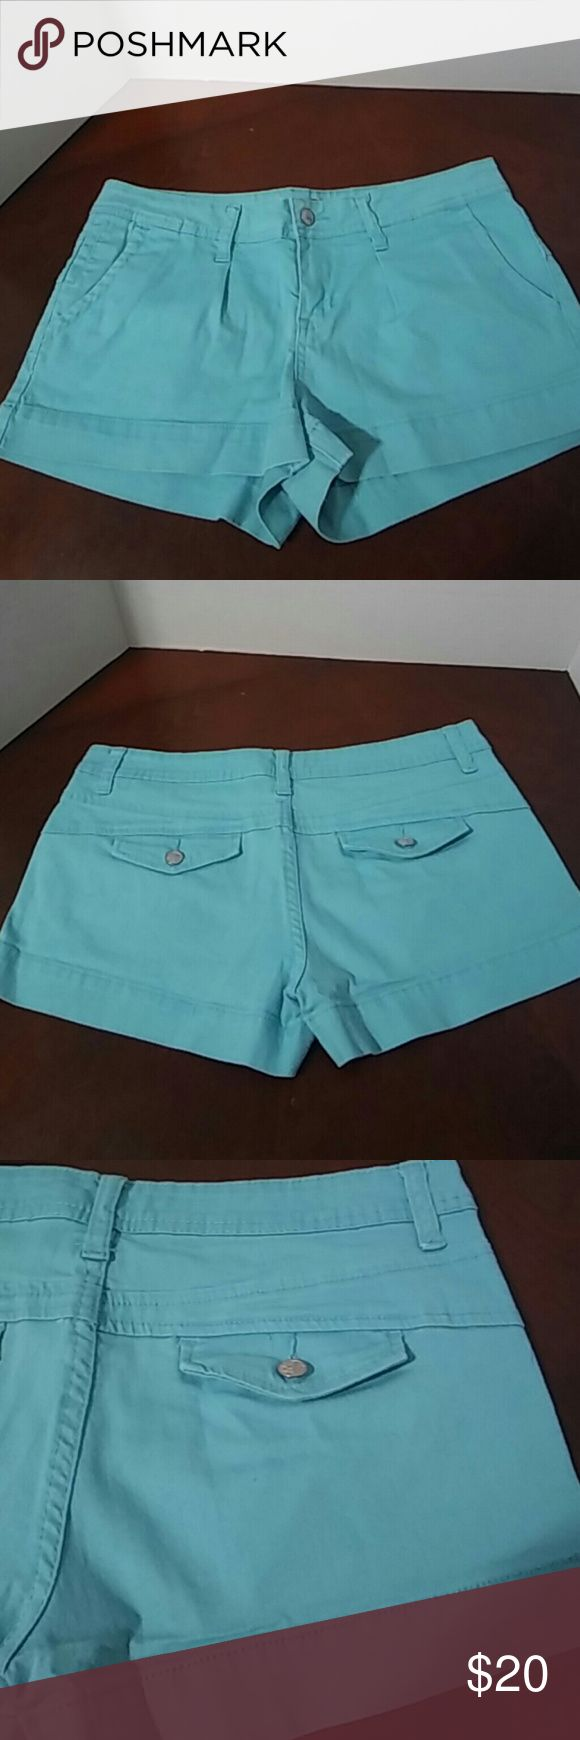 American Rag shorts Aqua shorts made by American Rag. Very cute single pleat style on the front. Size 7. American Rag Shorts